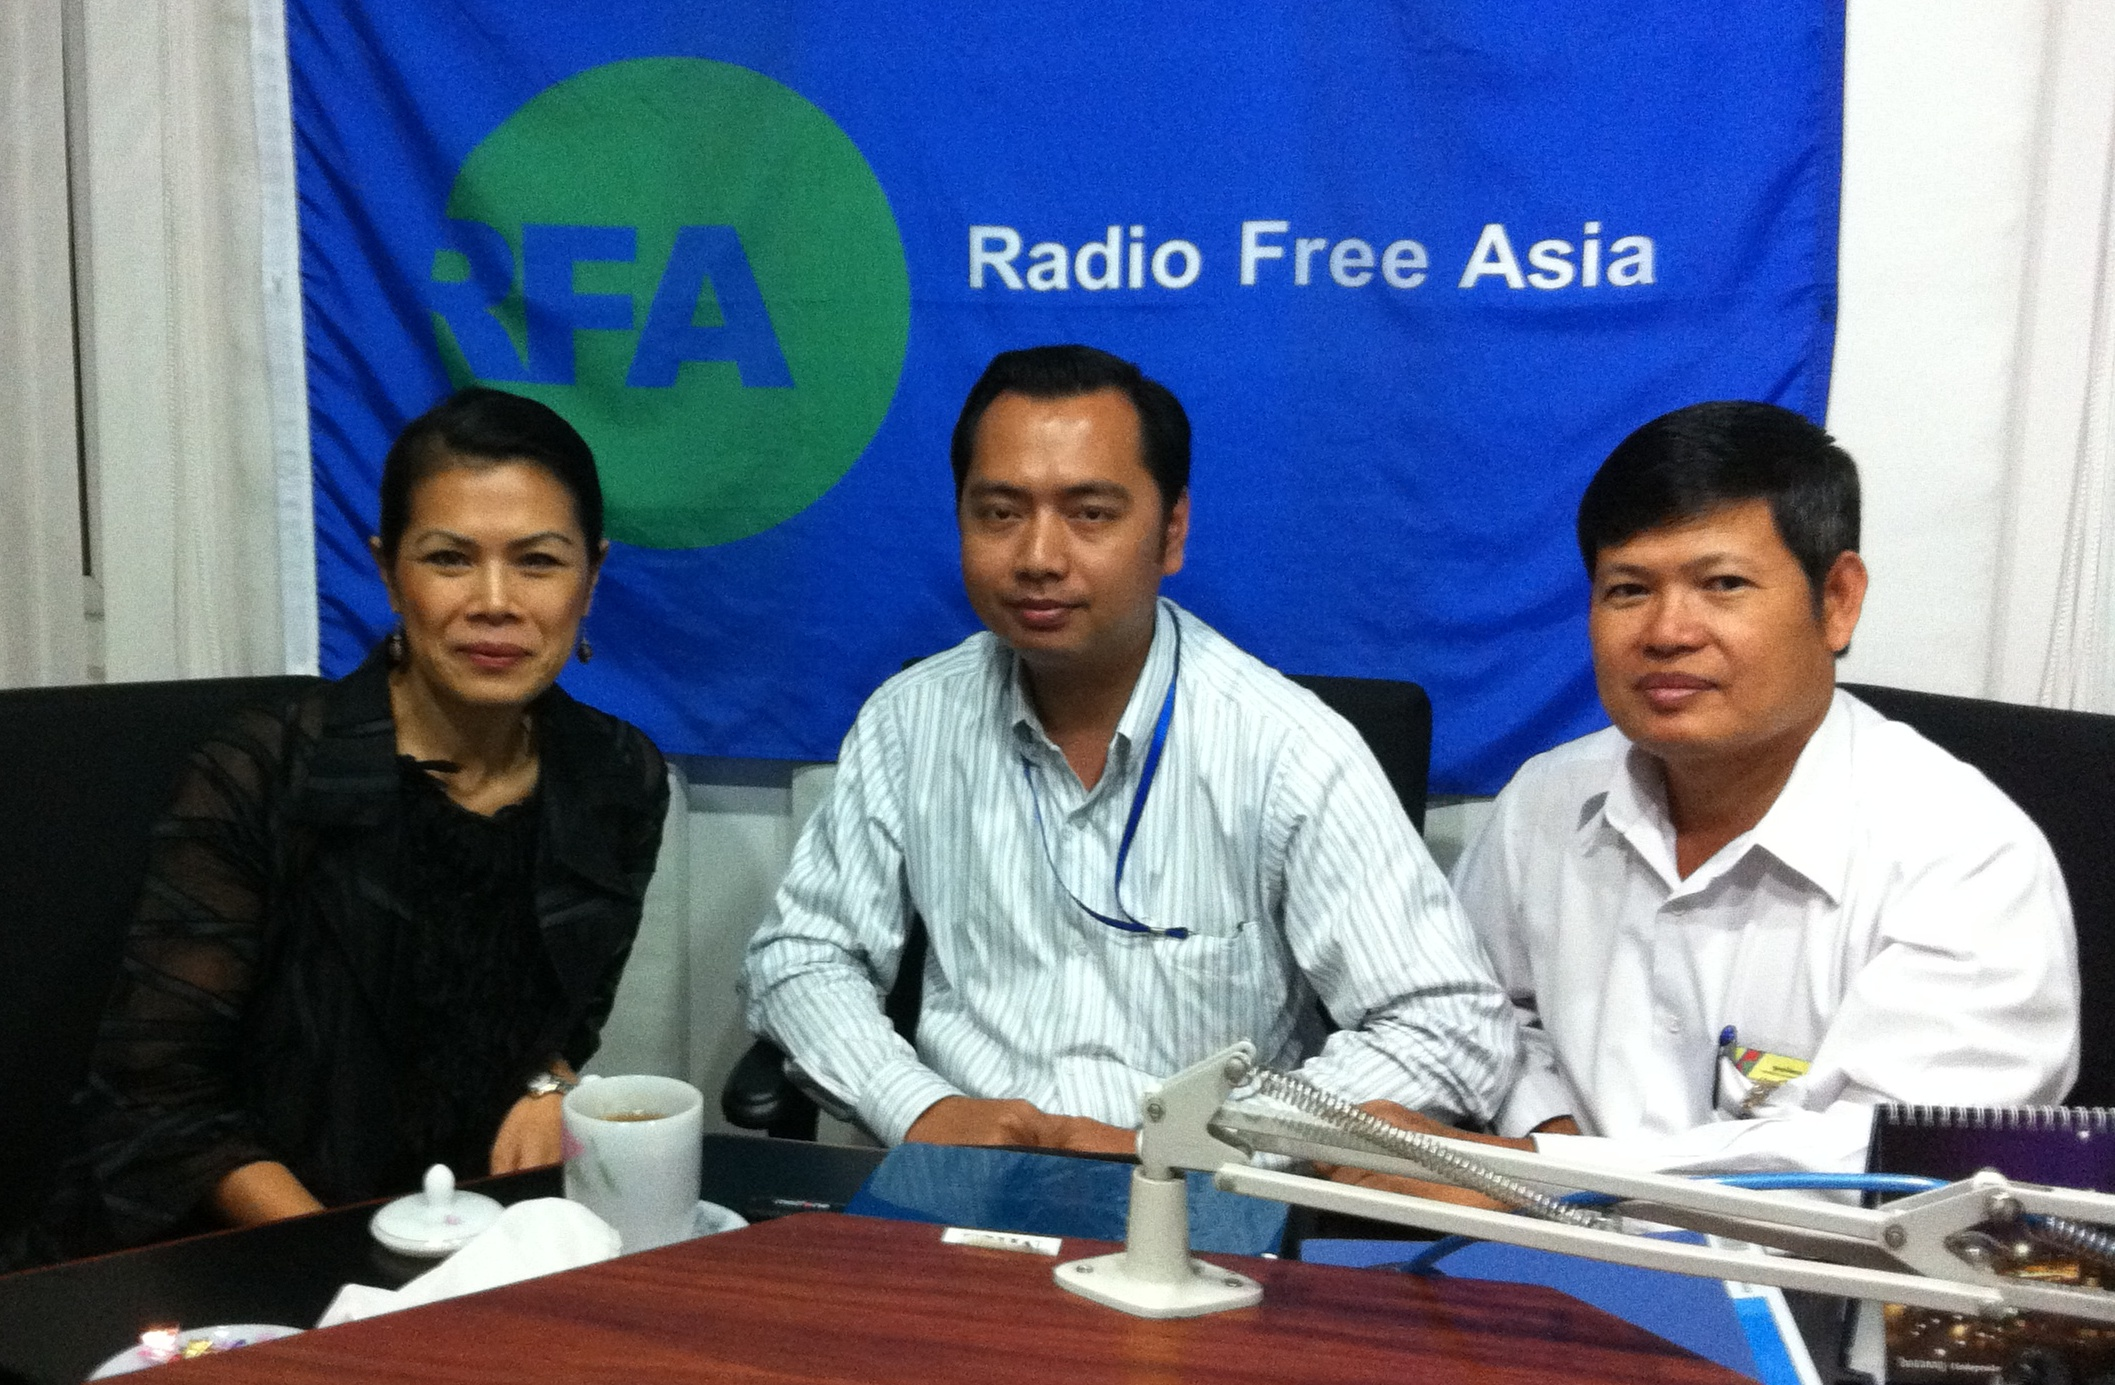 RFA call-in with Theary Seng, Neth Pheaktra, Leng Maly, Chey Theara, 25 Nov. 2011